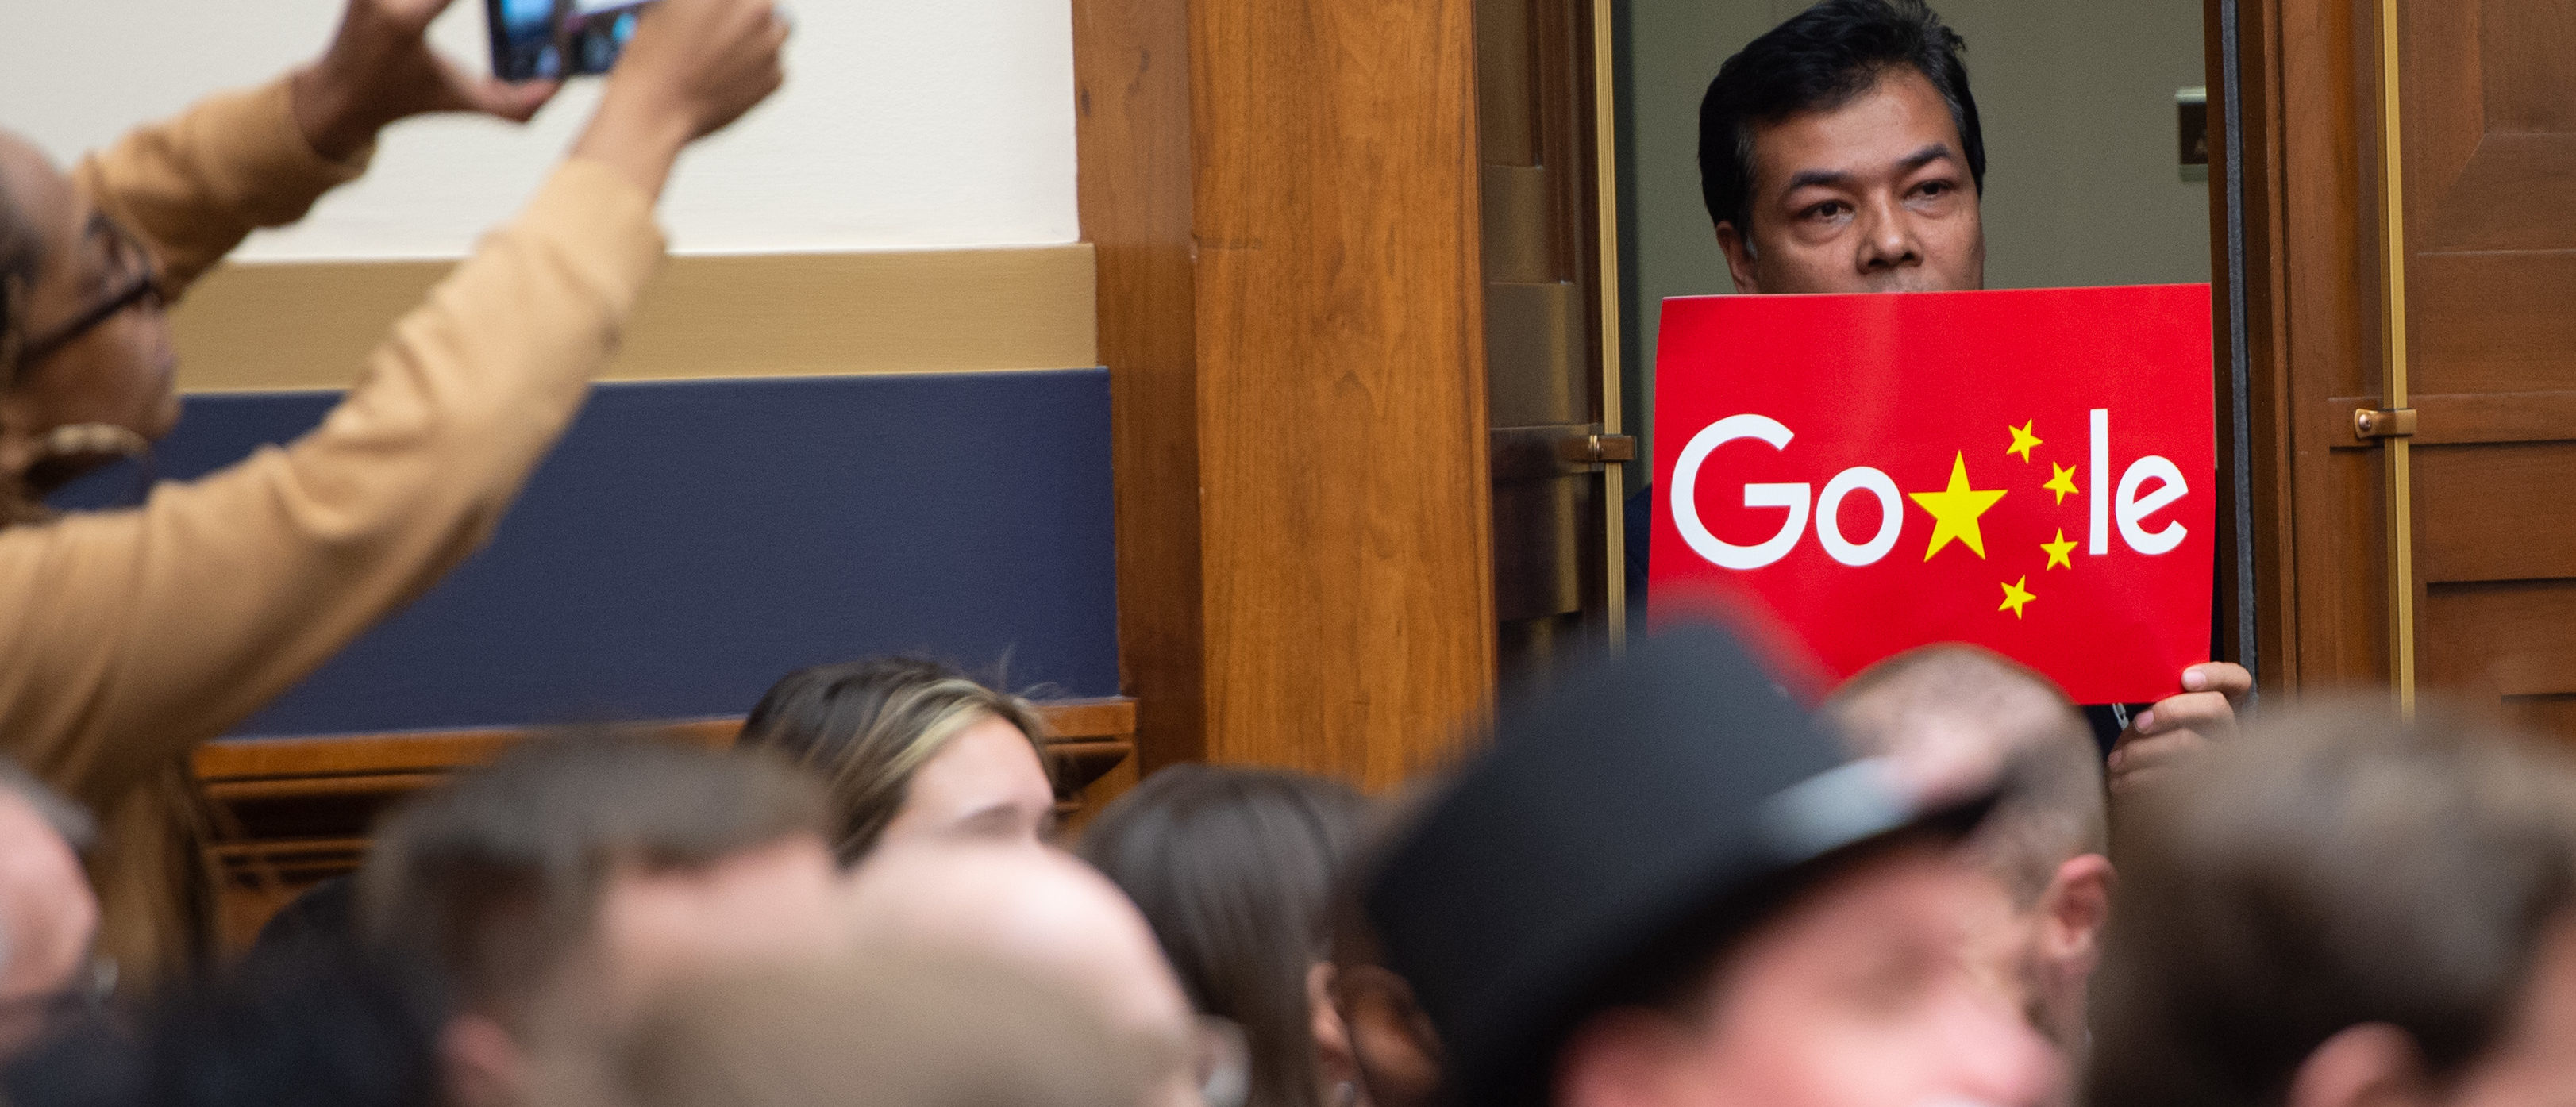 """A demonstrator holds a sign in protest as Google CEO Sundar Pichai testifies during a House Judiciary Committee hearing on Capitol Hill in Washington, DC, December 11, 2018. - Google chief executive Sundar Pichai was grilled by US lawmakers over allegations of """"political bias"""" by the internet giant, concerns over data security and its domination of internet search. (Photo by SAUL LOEB / AFP) (Photo credit should read SAUL LOEB/AFP/Getty Images)"""